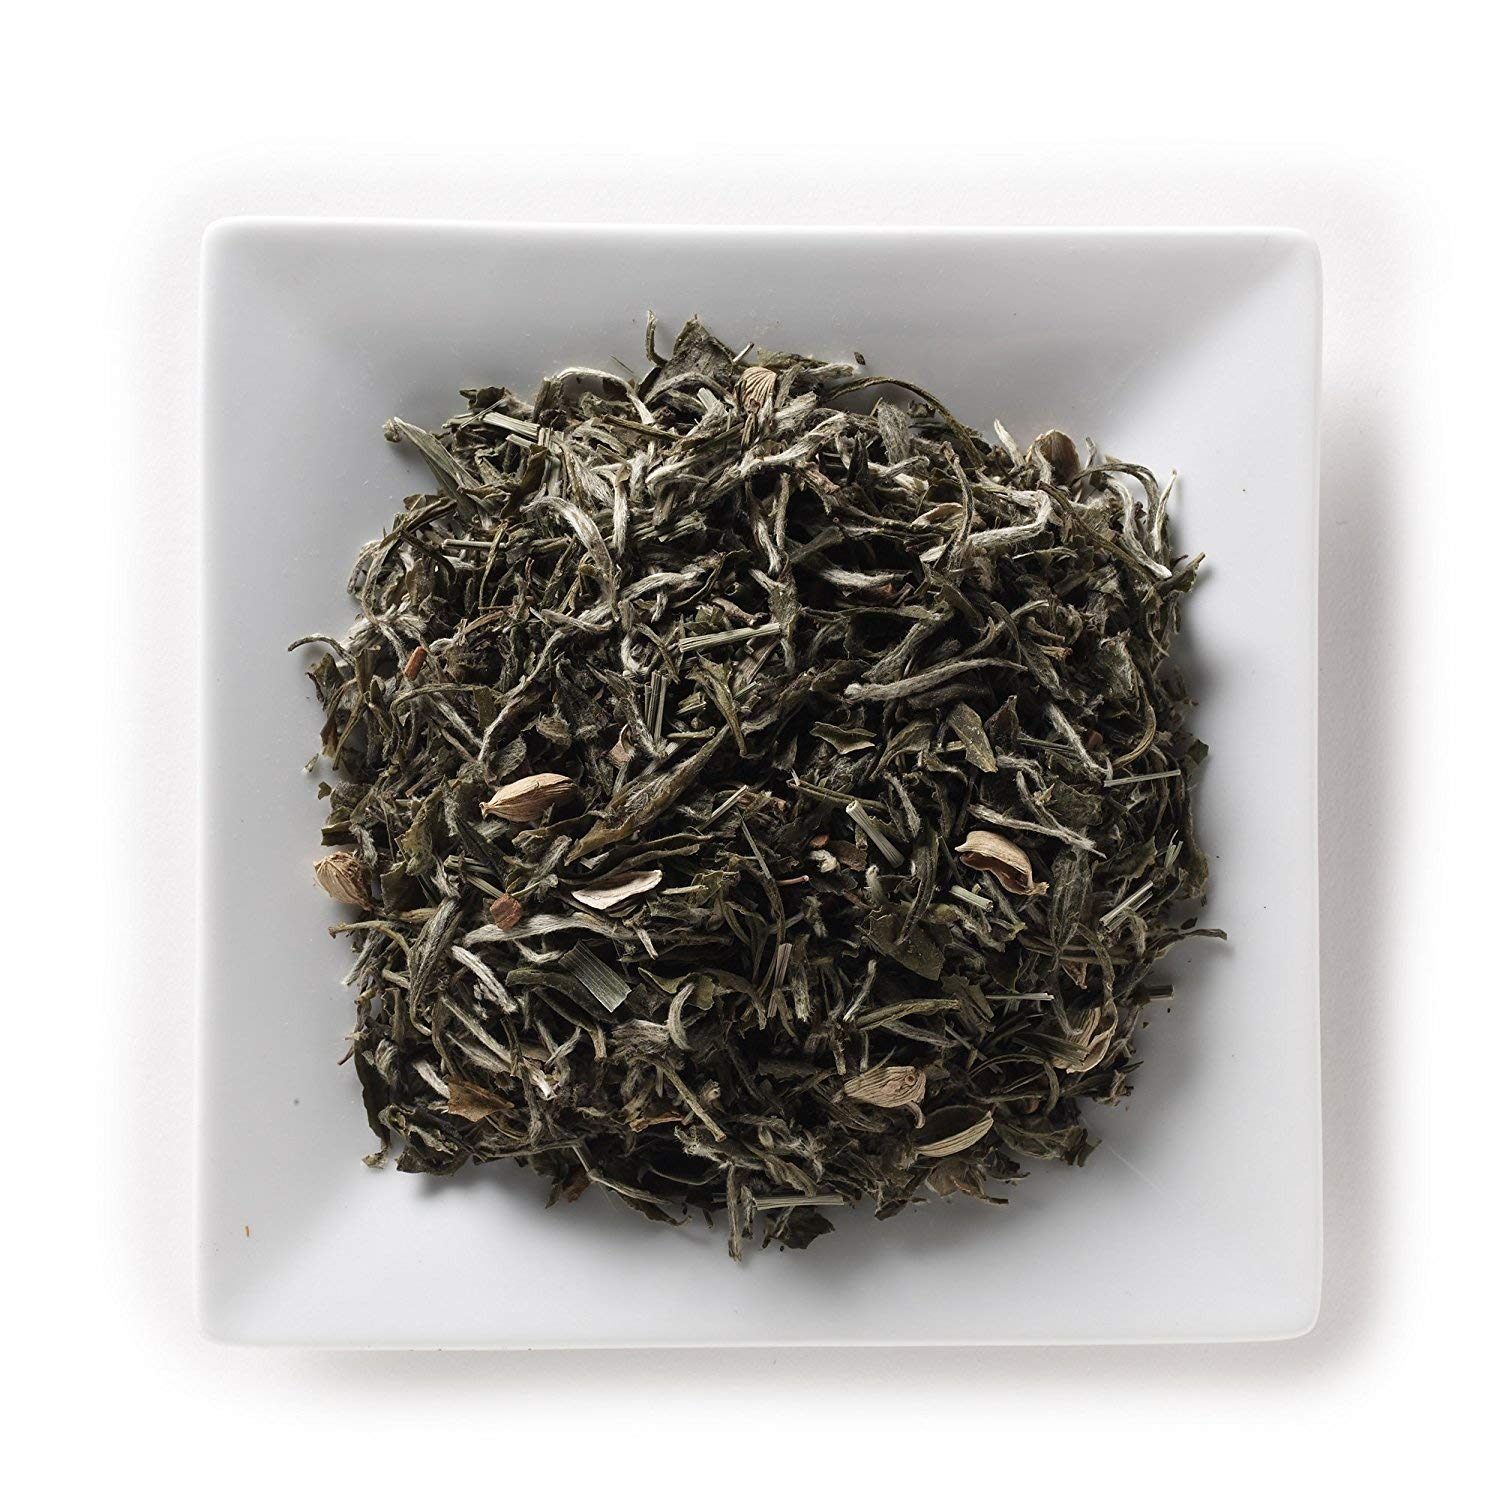 Mahamosa Chai White Tea (Pai Mu Tan) 2 oz, Loose Leaf (Loose-Leaf) White Tea Blend (bai mudan tea, bai mu dan tea) (with lemongrass, cardamom, cinnamon, ginger flavor)